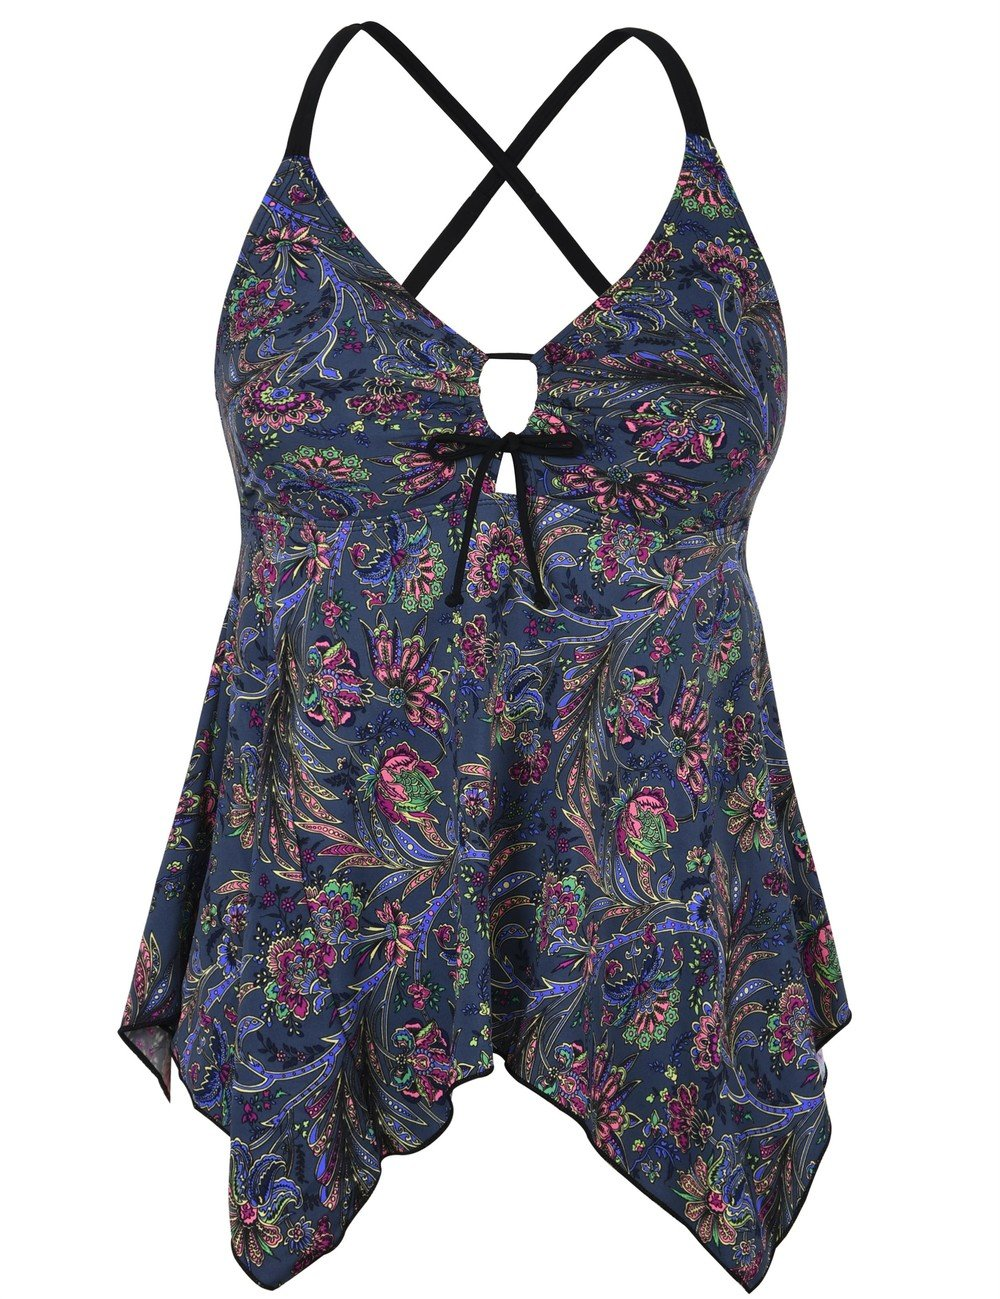 8059ad31eca Galleon - Firpearl Women s Blue Red Floral Flowy Swimsuit Crossback Plus  Size Tankini Top US14 Blue Red Floral